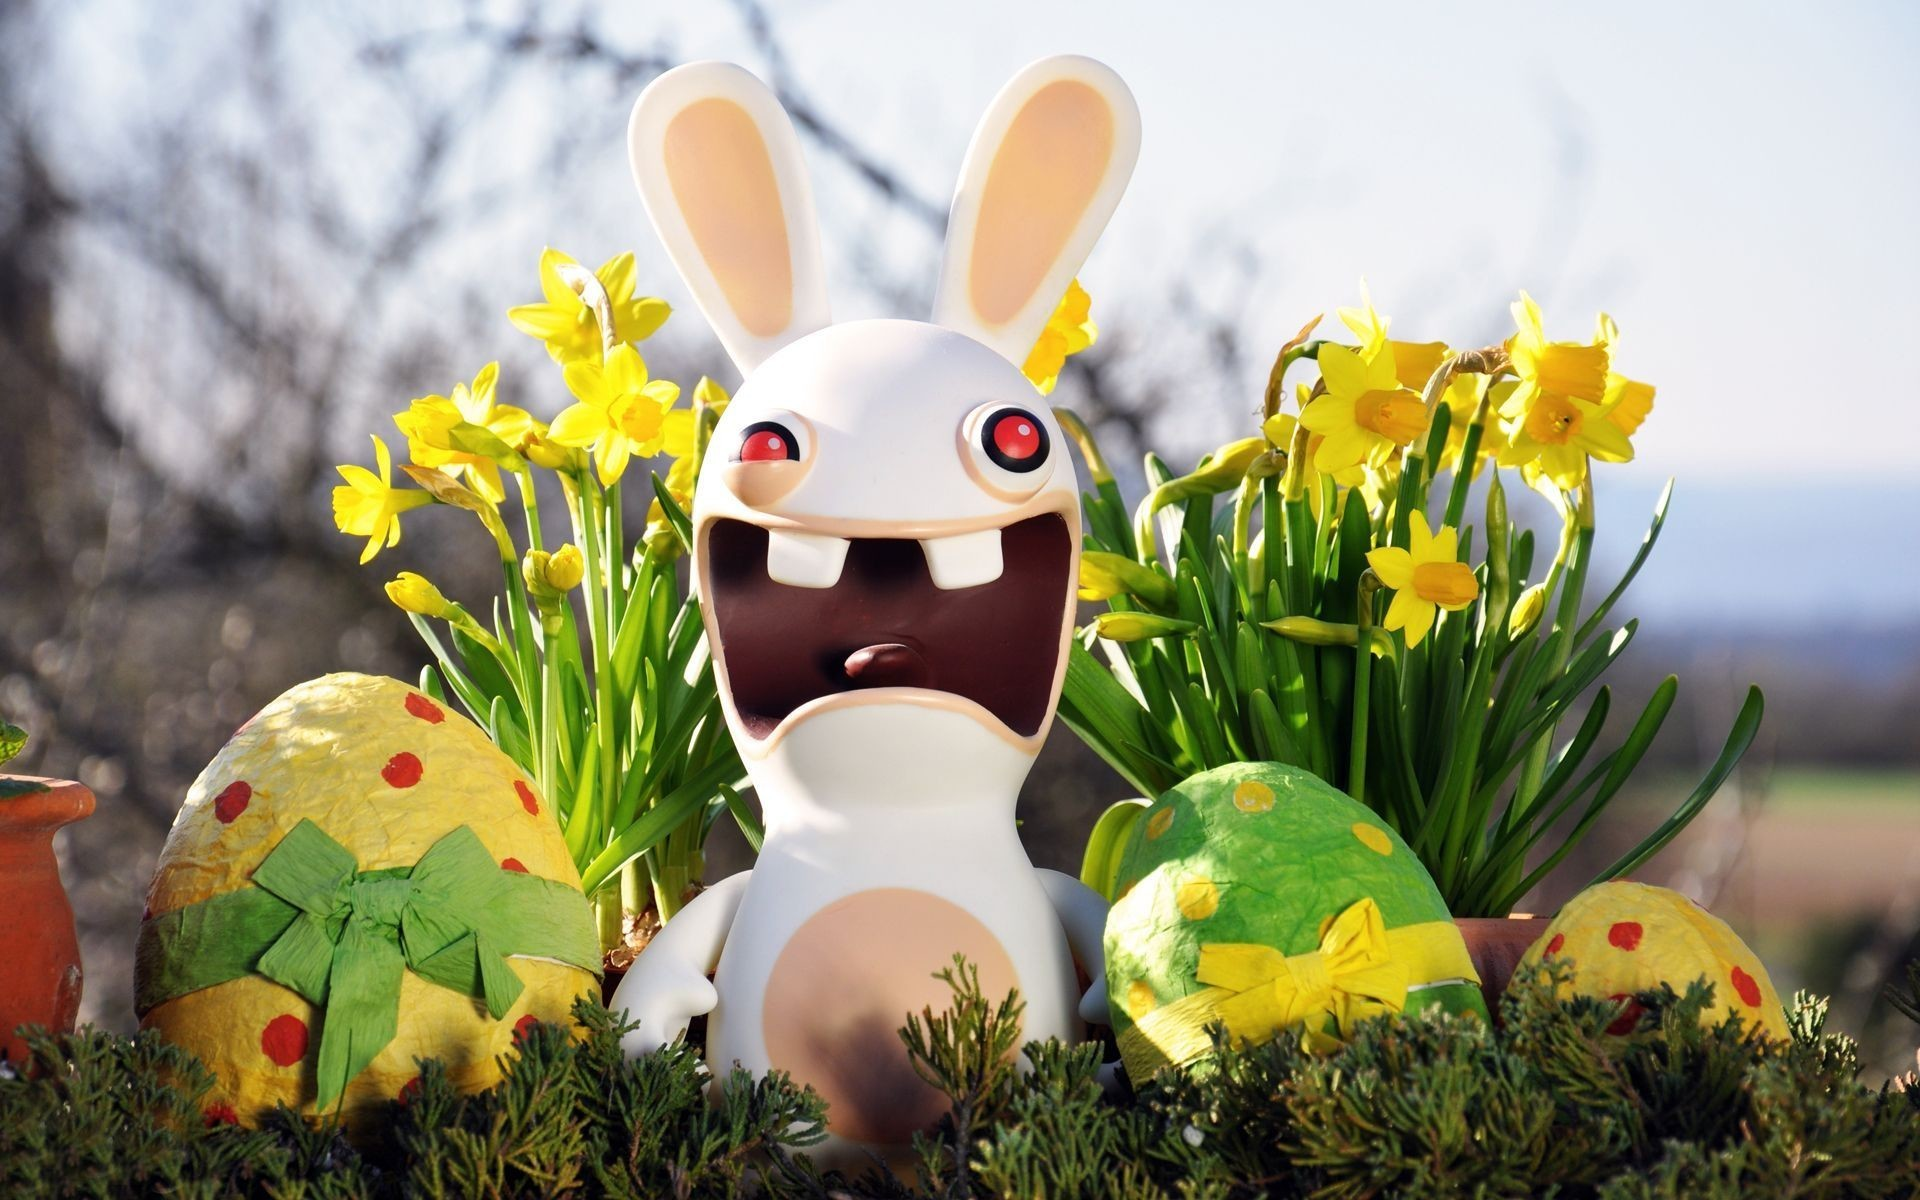 Easter Wallpapers Hd Download Free Colletion 60: Easter Wallpapers For Desktop (64+ Images